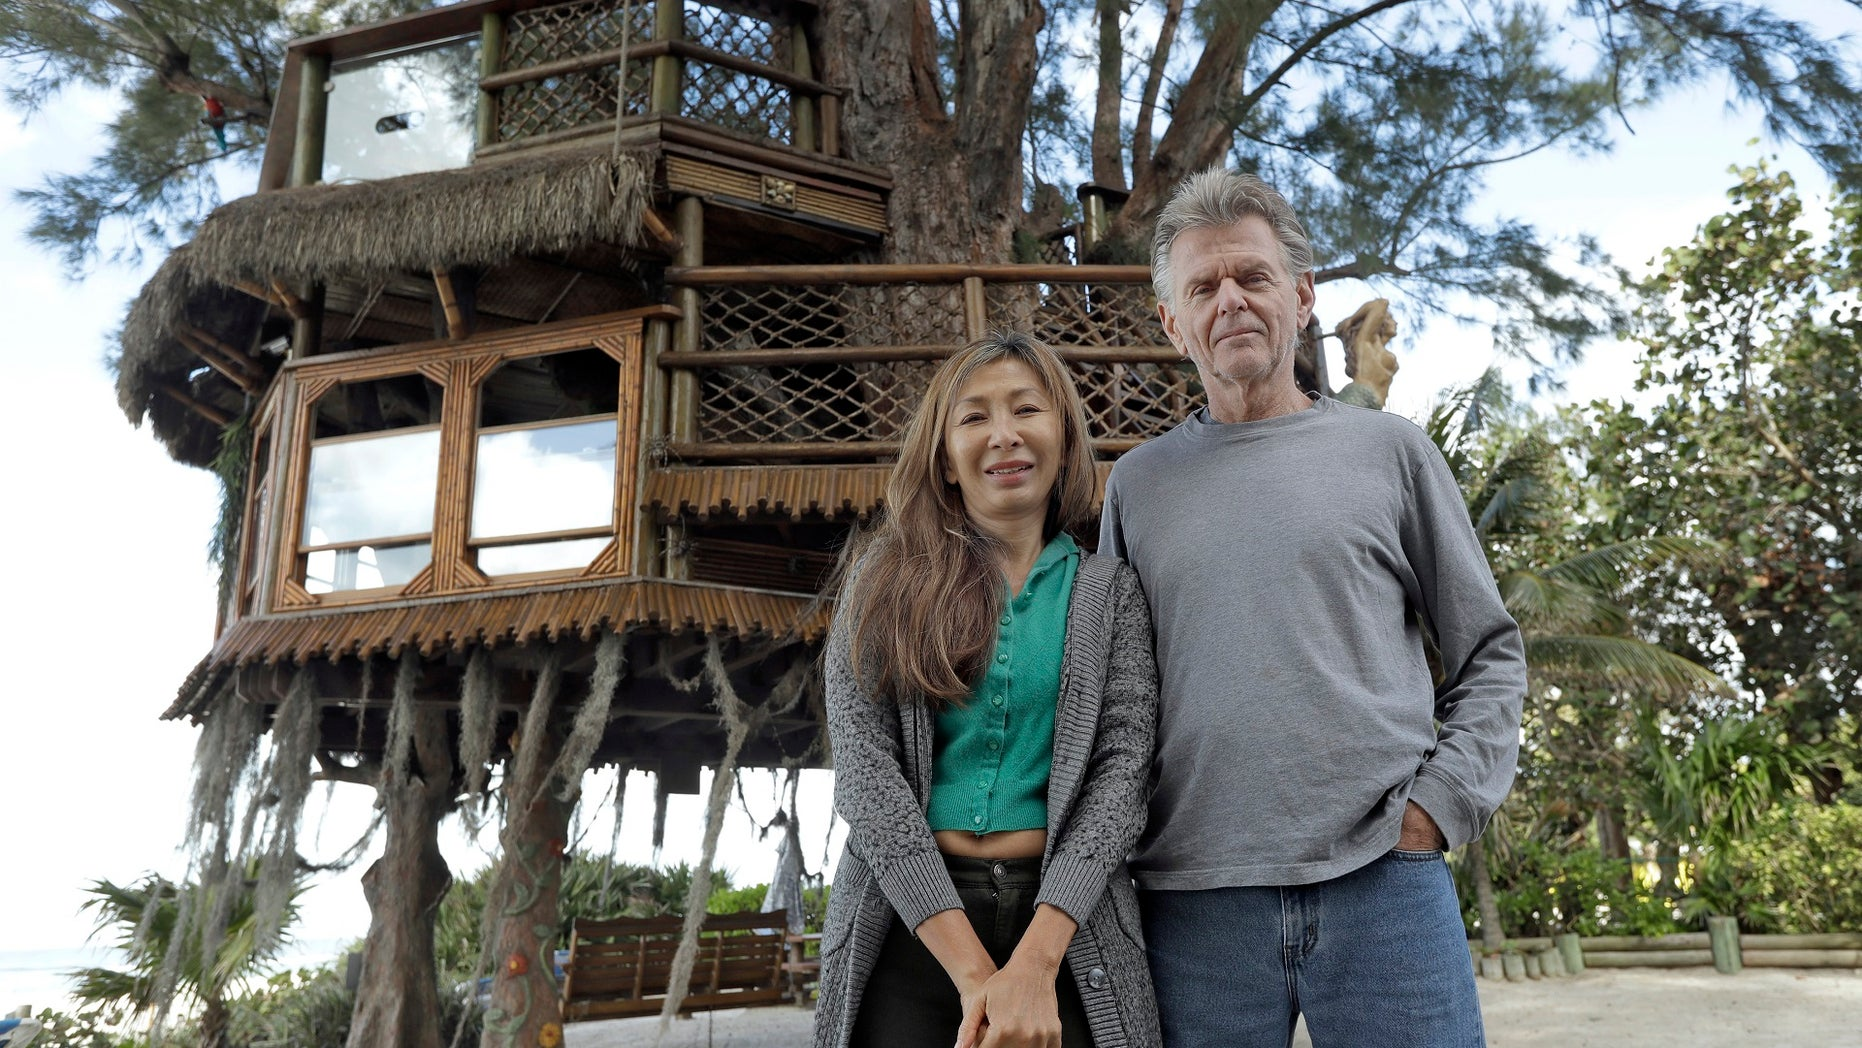 Lynn Tran and her husband, Richard Hazen, near their Australian pine treehouse on Thursday in Holmes Beach, Fla. The couple hope the U.S. Supreme Court will hear their case after city and state officials ordered the treehouse removed.